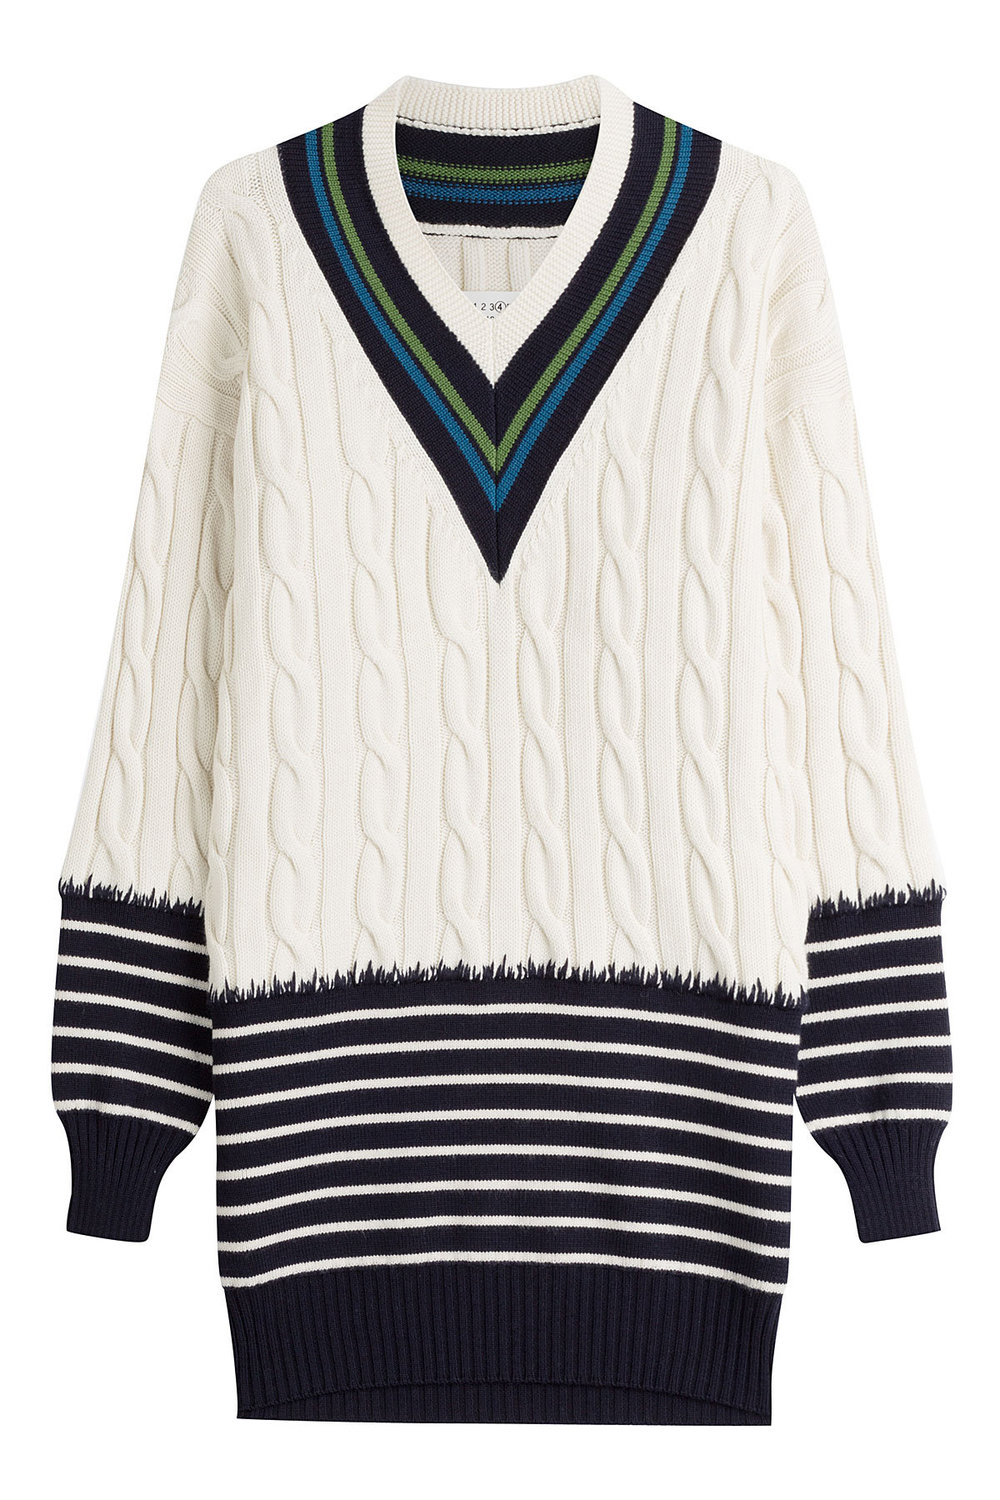 XXX jumper, £671 by Maison Margiela